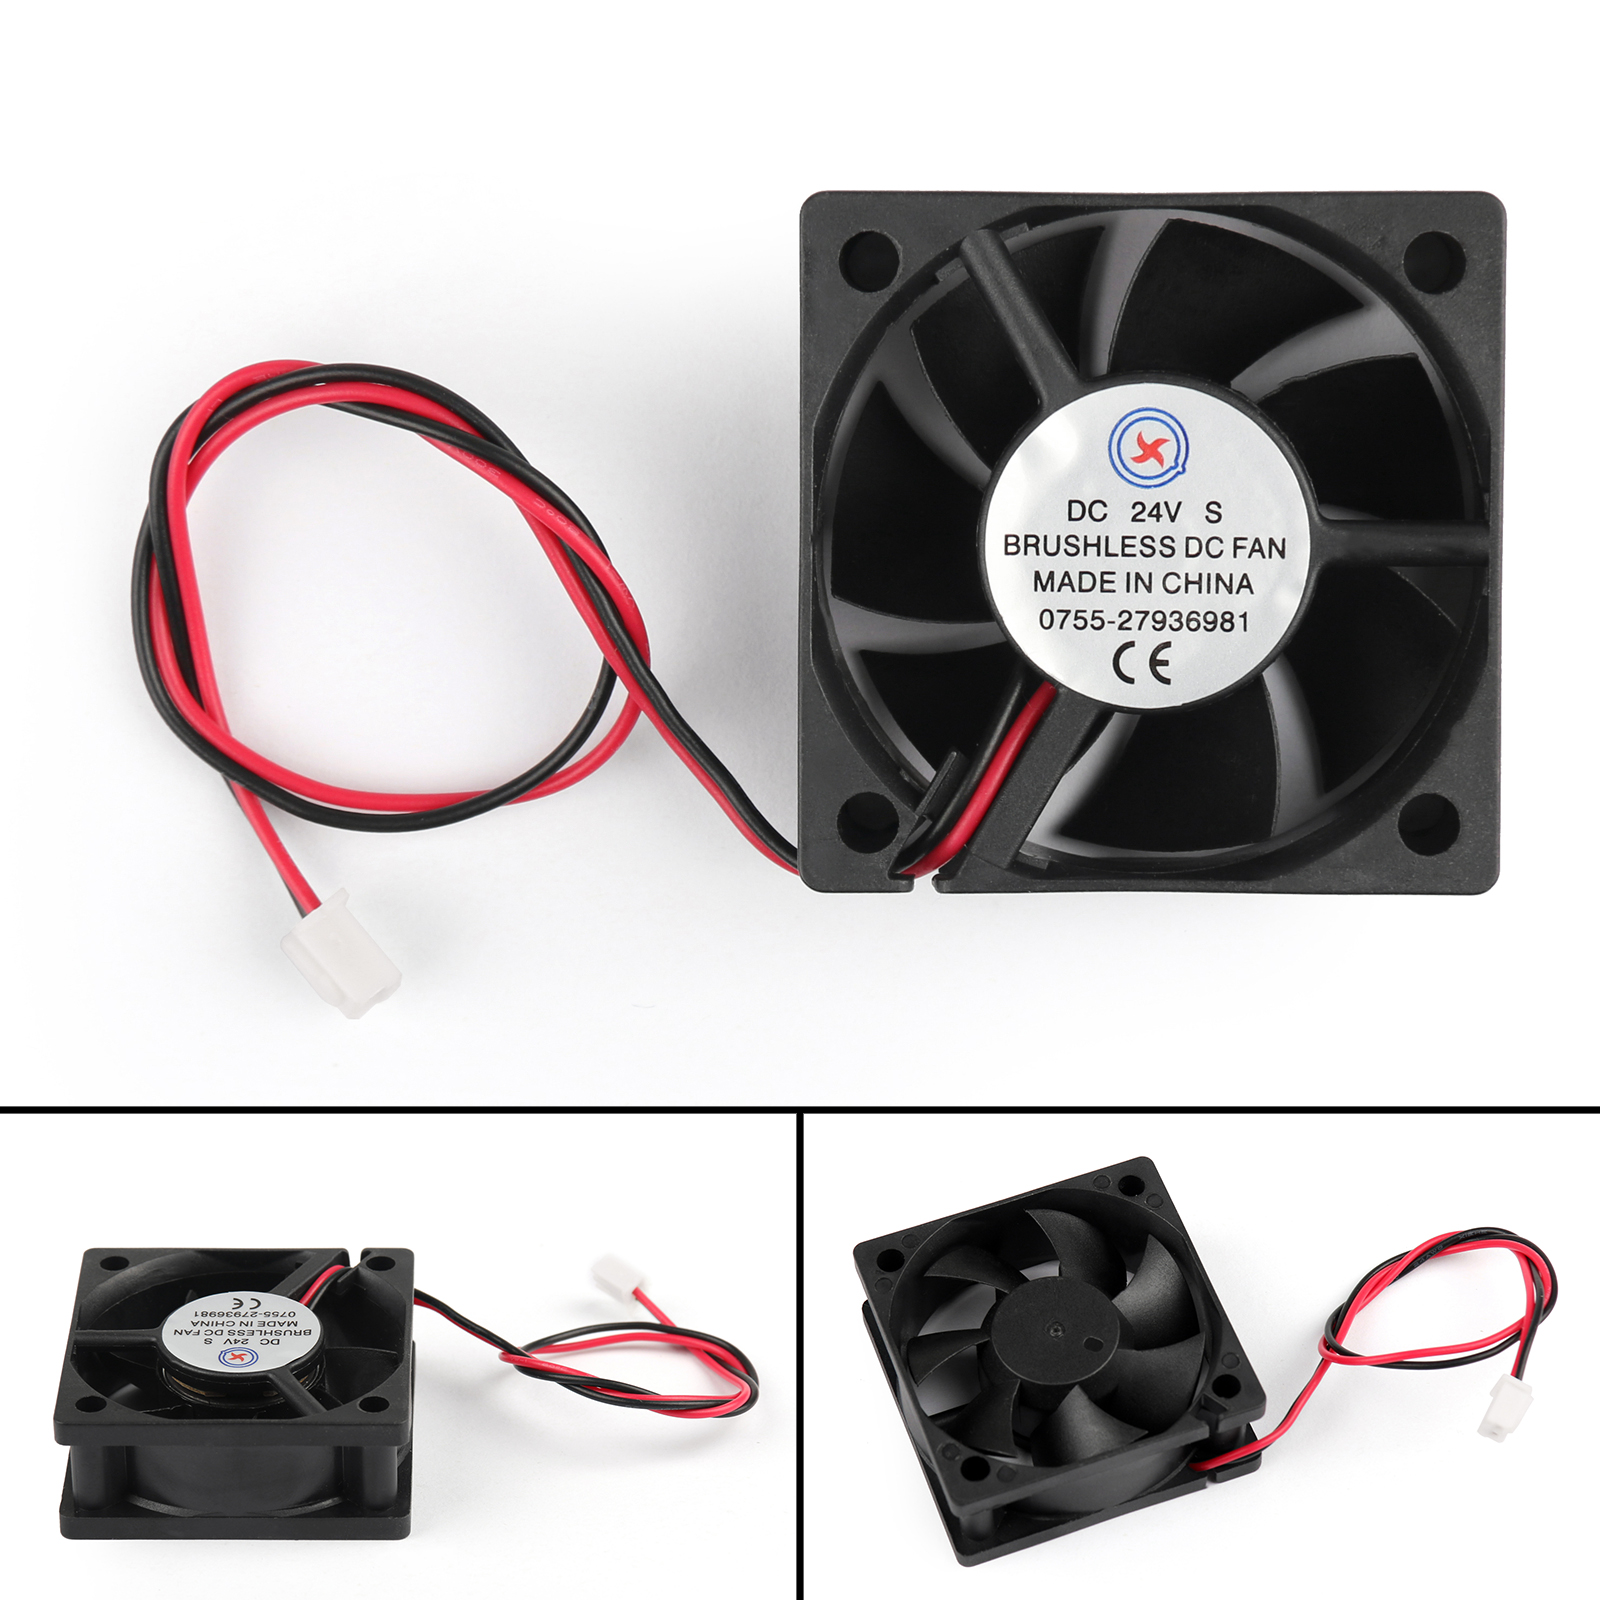 Dc Brushless Fan Replacement : Dc brushless cooling pc computer fan v s mm